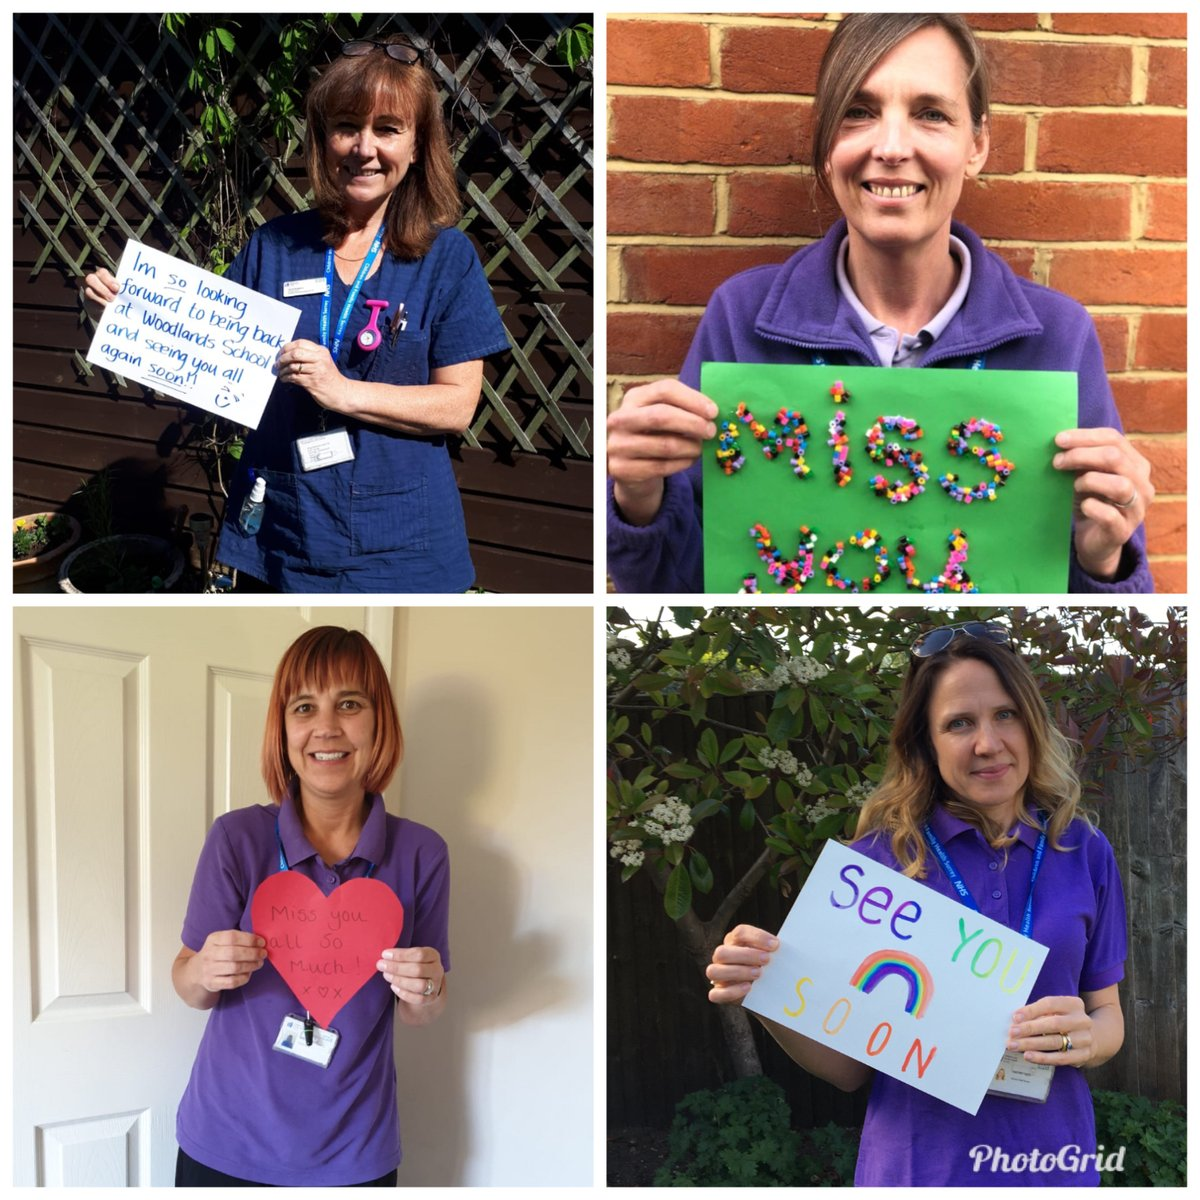 A lovely message to the children from Heidi, Andrea, Sally and Jo in our wonderful nursing team at Woodlands School 😊 #NHSHeroes #Nursing